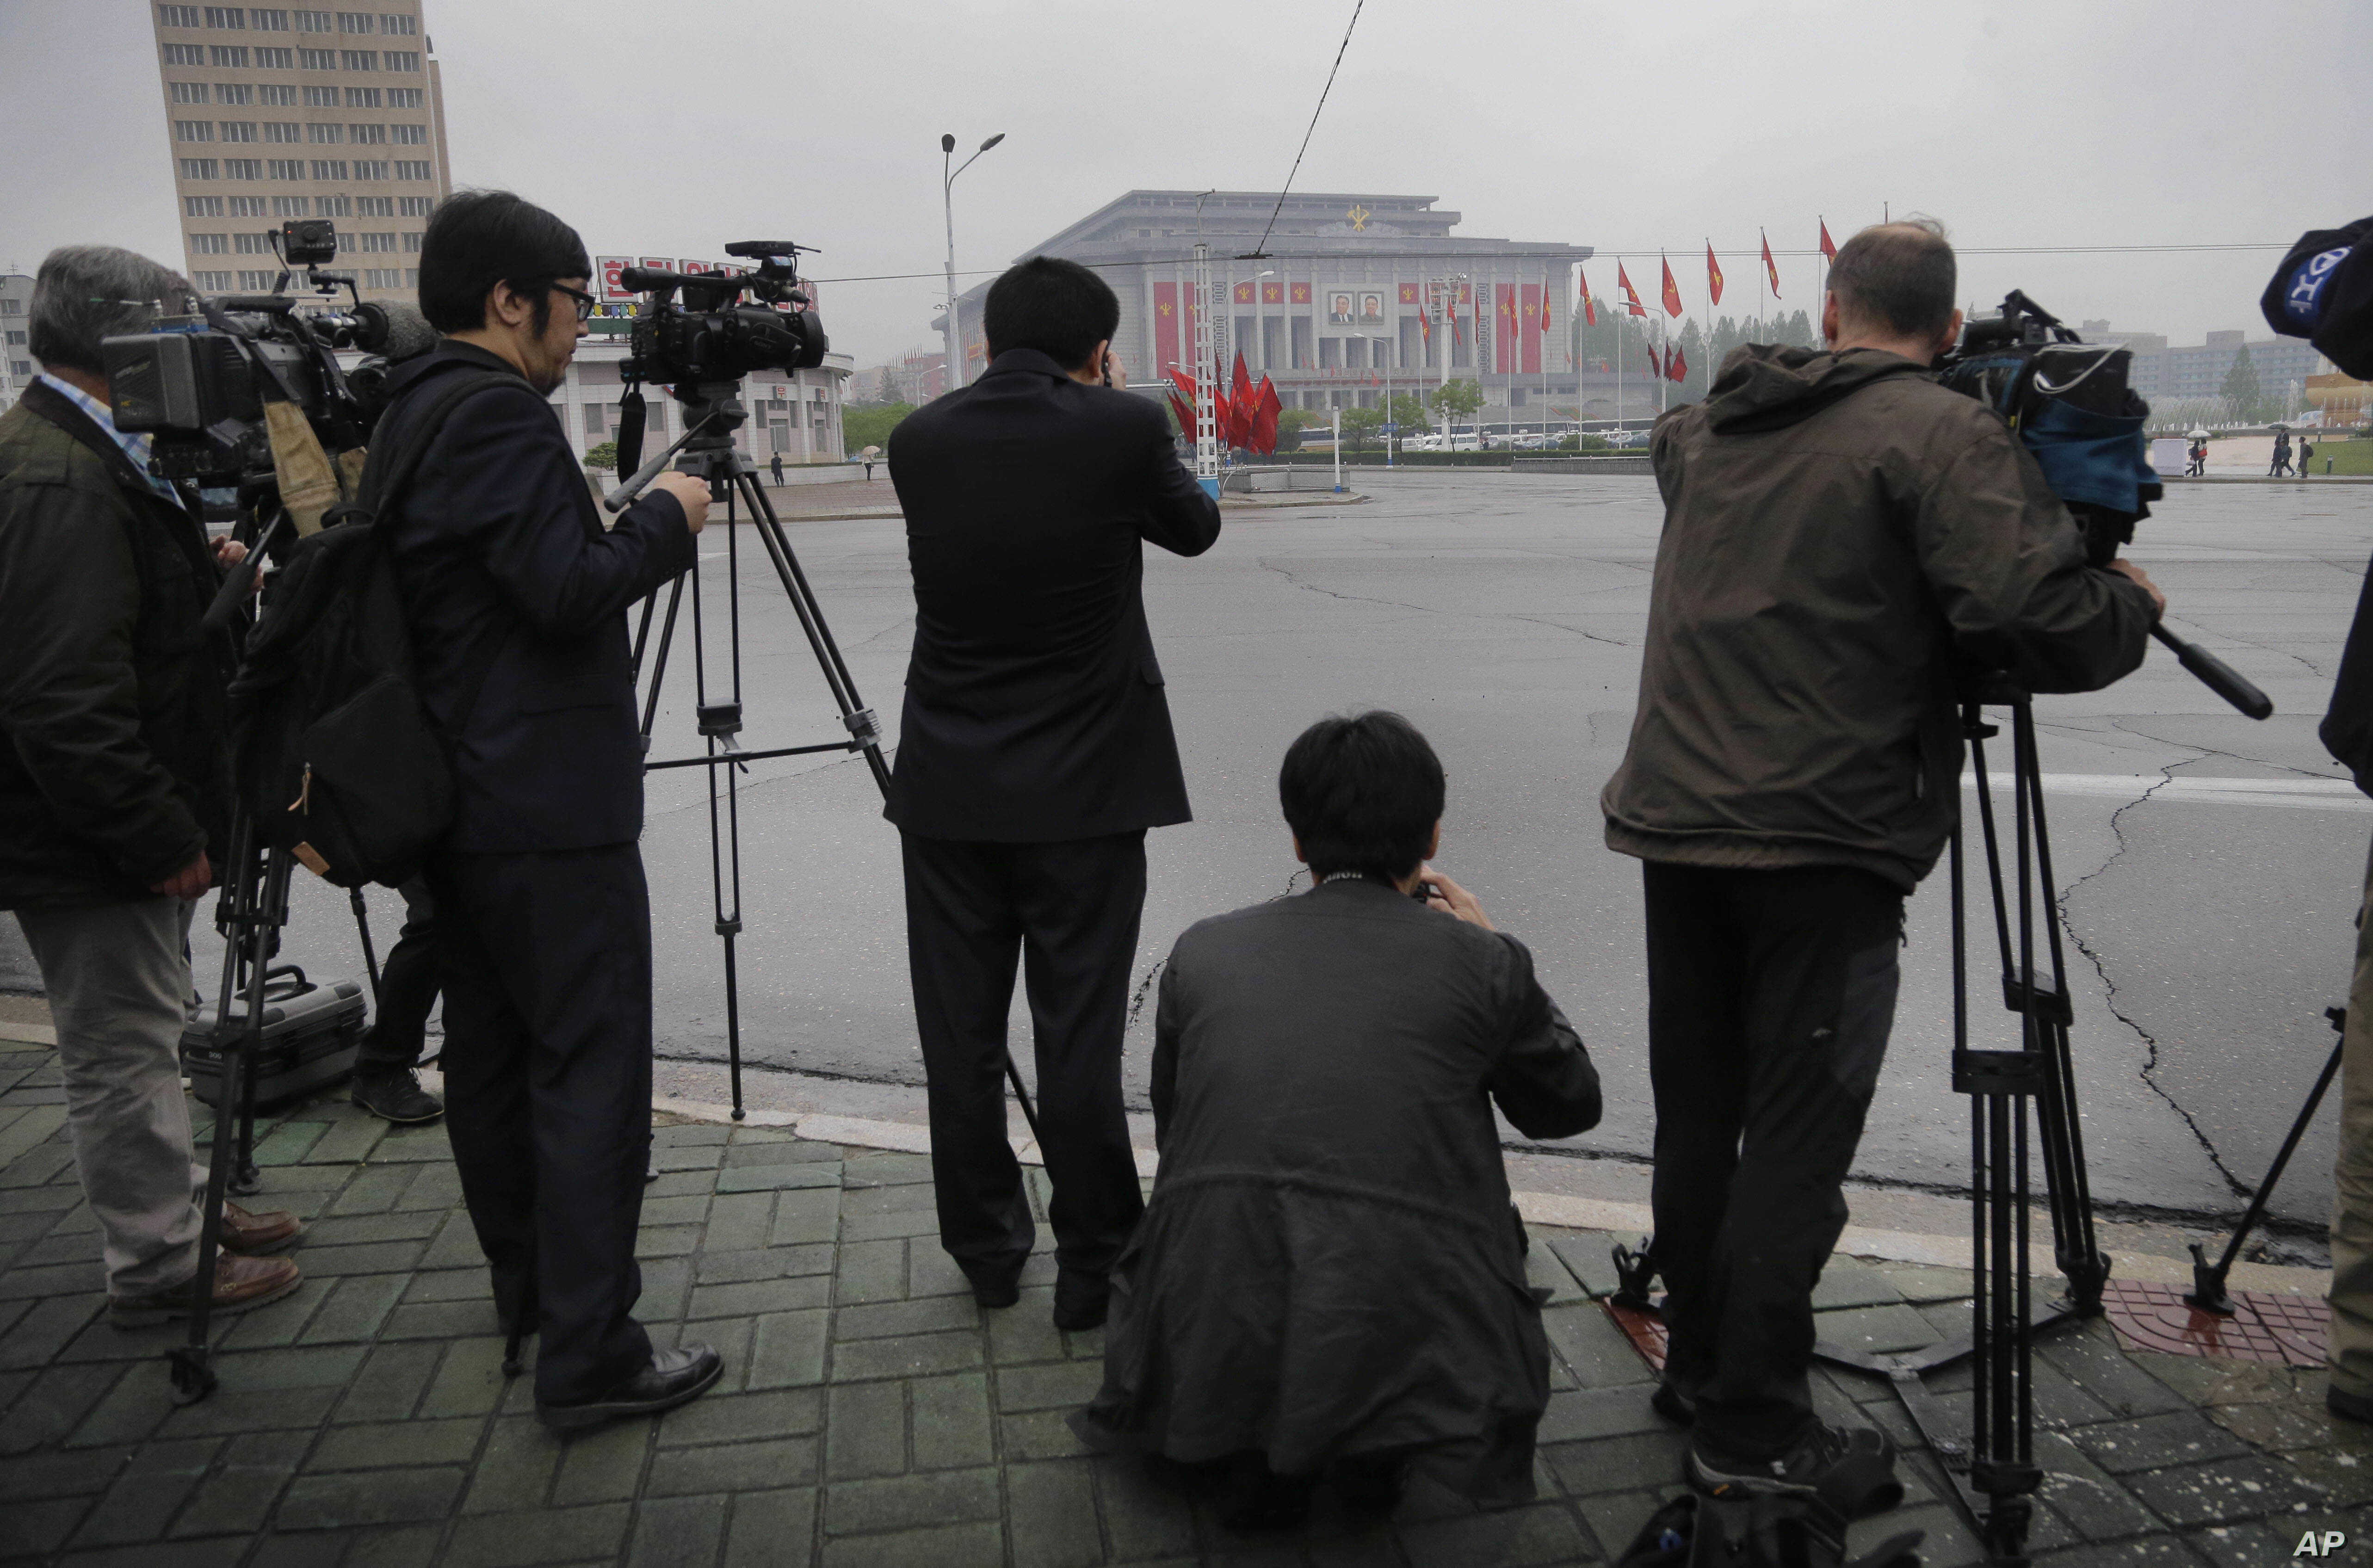 Foreign journalists are seen filming the April 25 House of Culture, the venue for the 7th Congress of the Workers' Party of Korea, on May 6, 2016, in Pyongyang, North Korea.